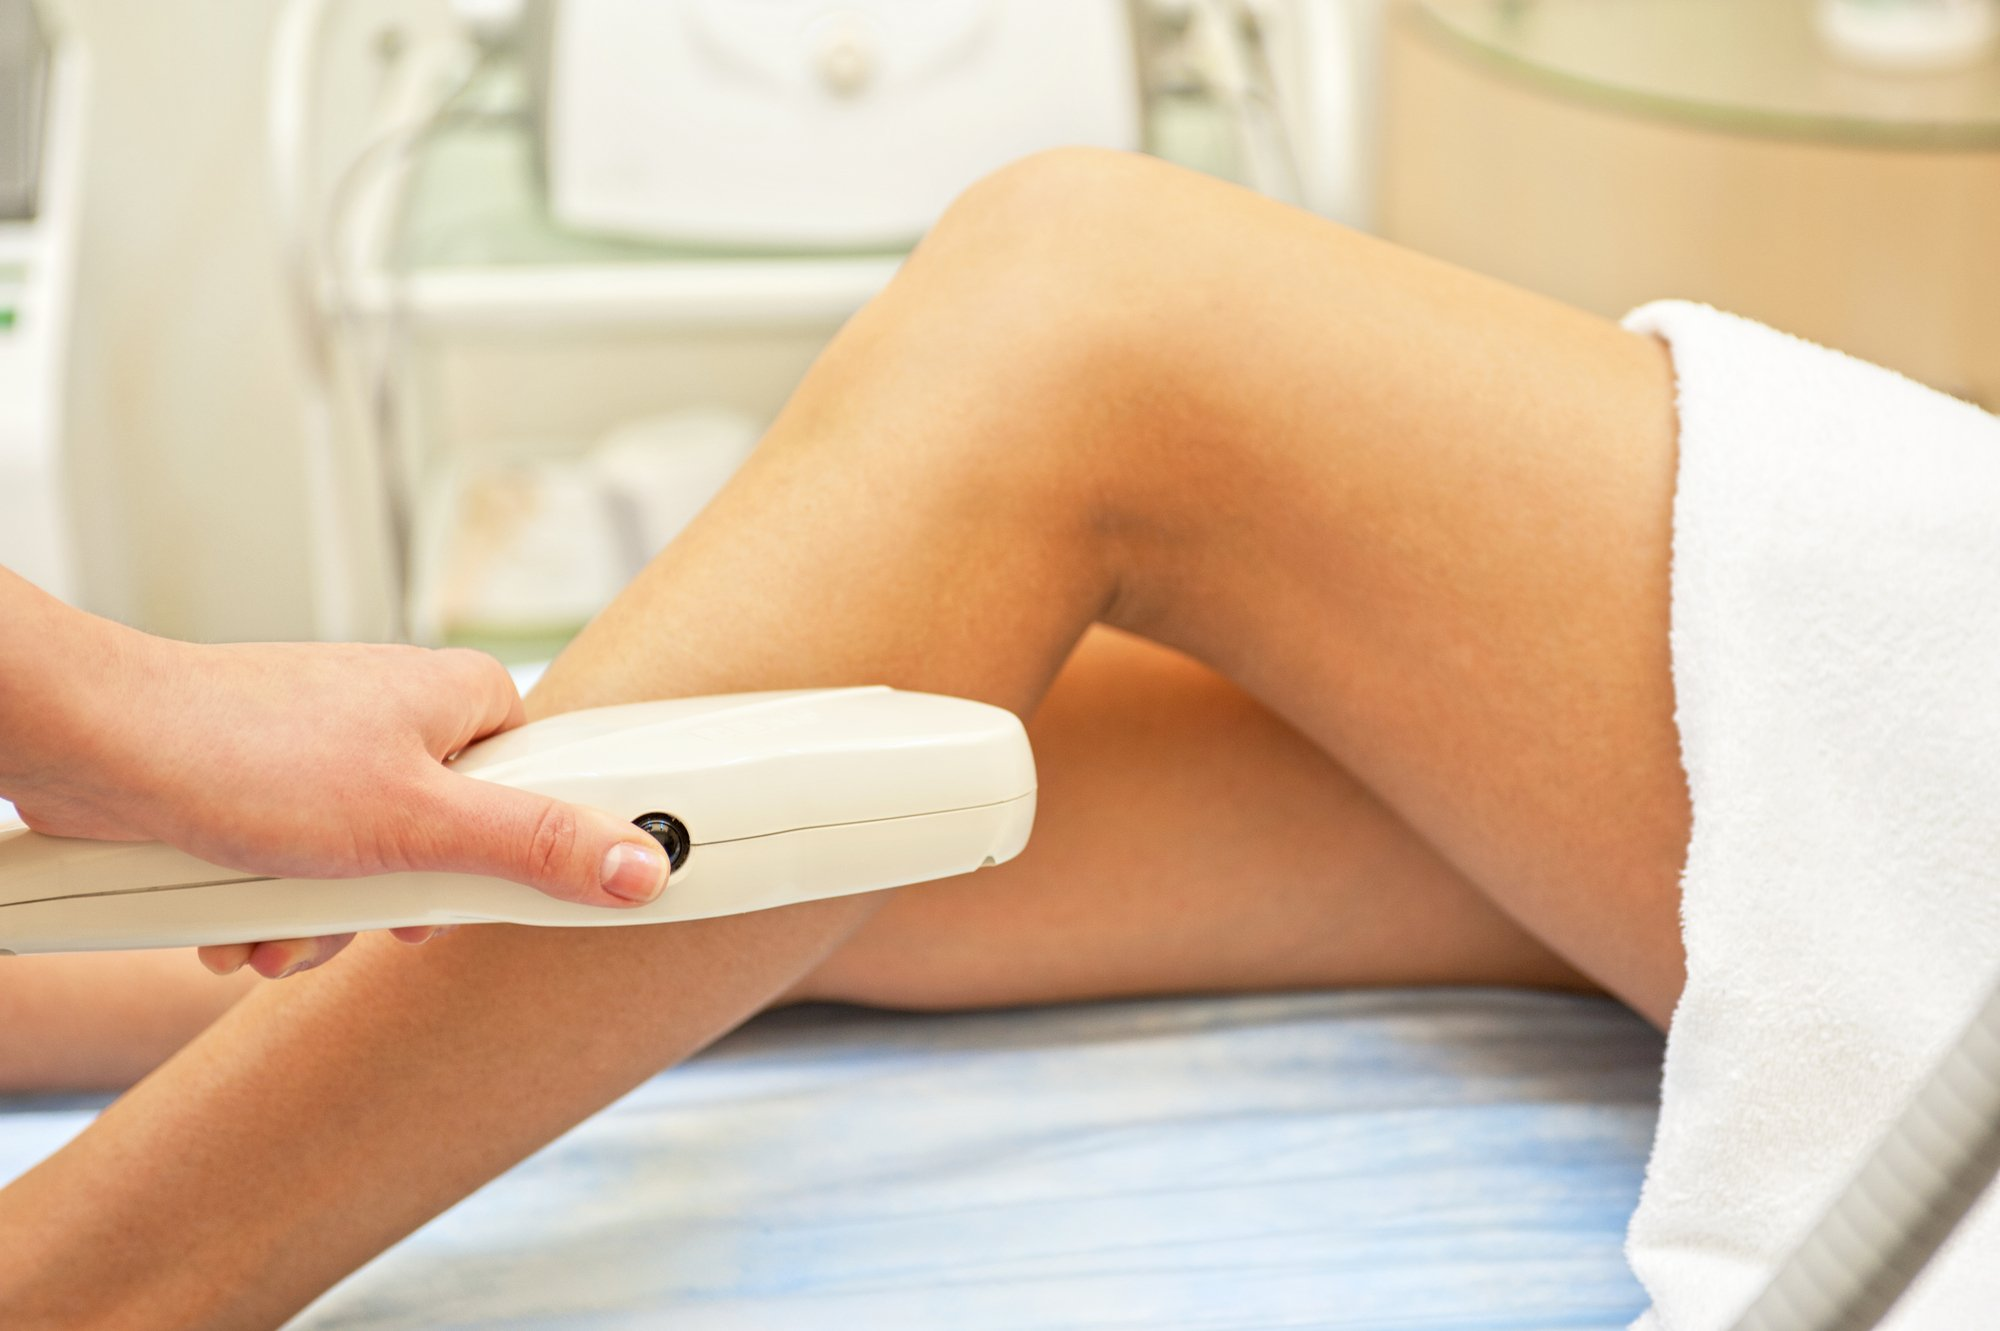 What Does Laser Hair Removal Cost Depend On